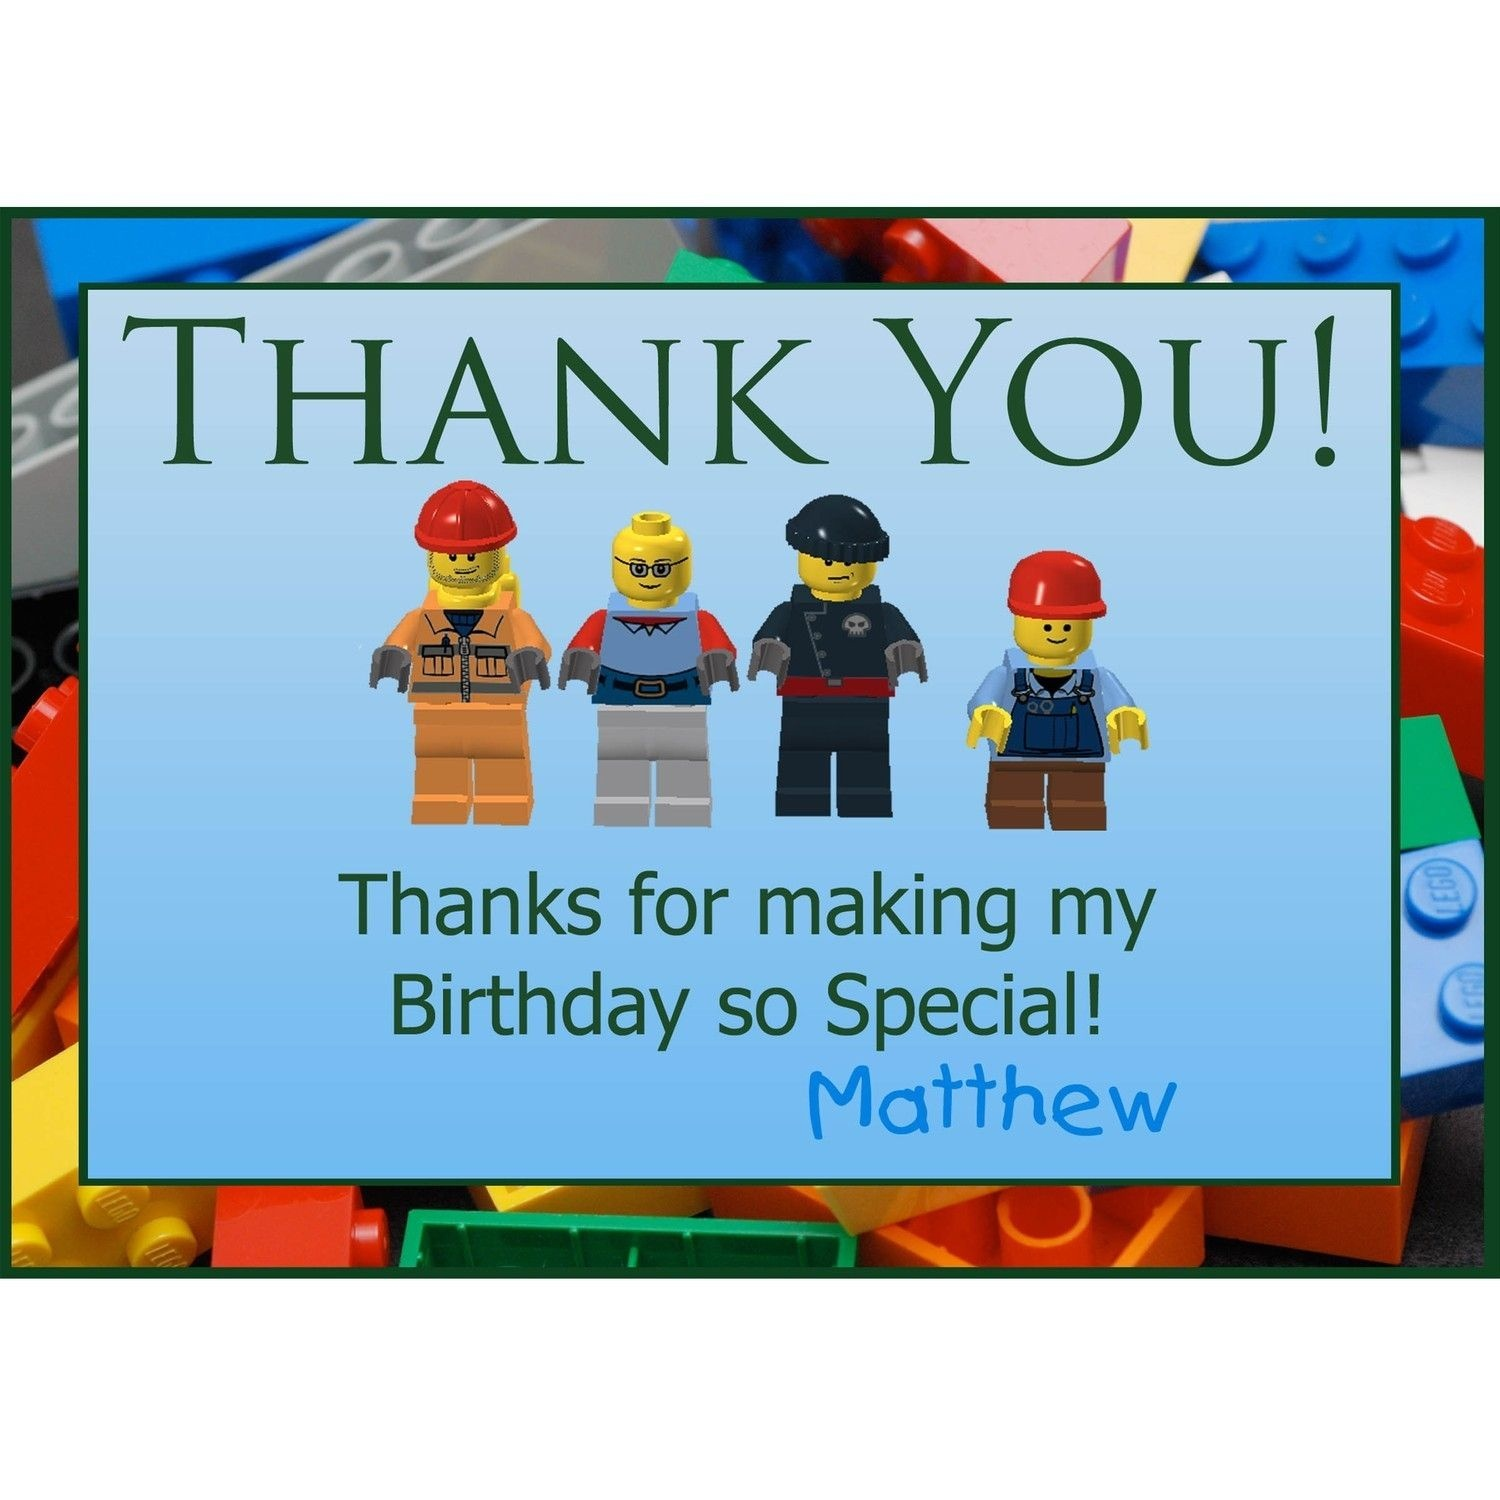 Free Printable Lego Thank You Notes | Lego Thank You Greeting Cards - Free Printable Minecraft Thank You Notes